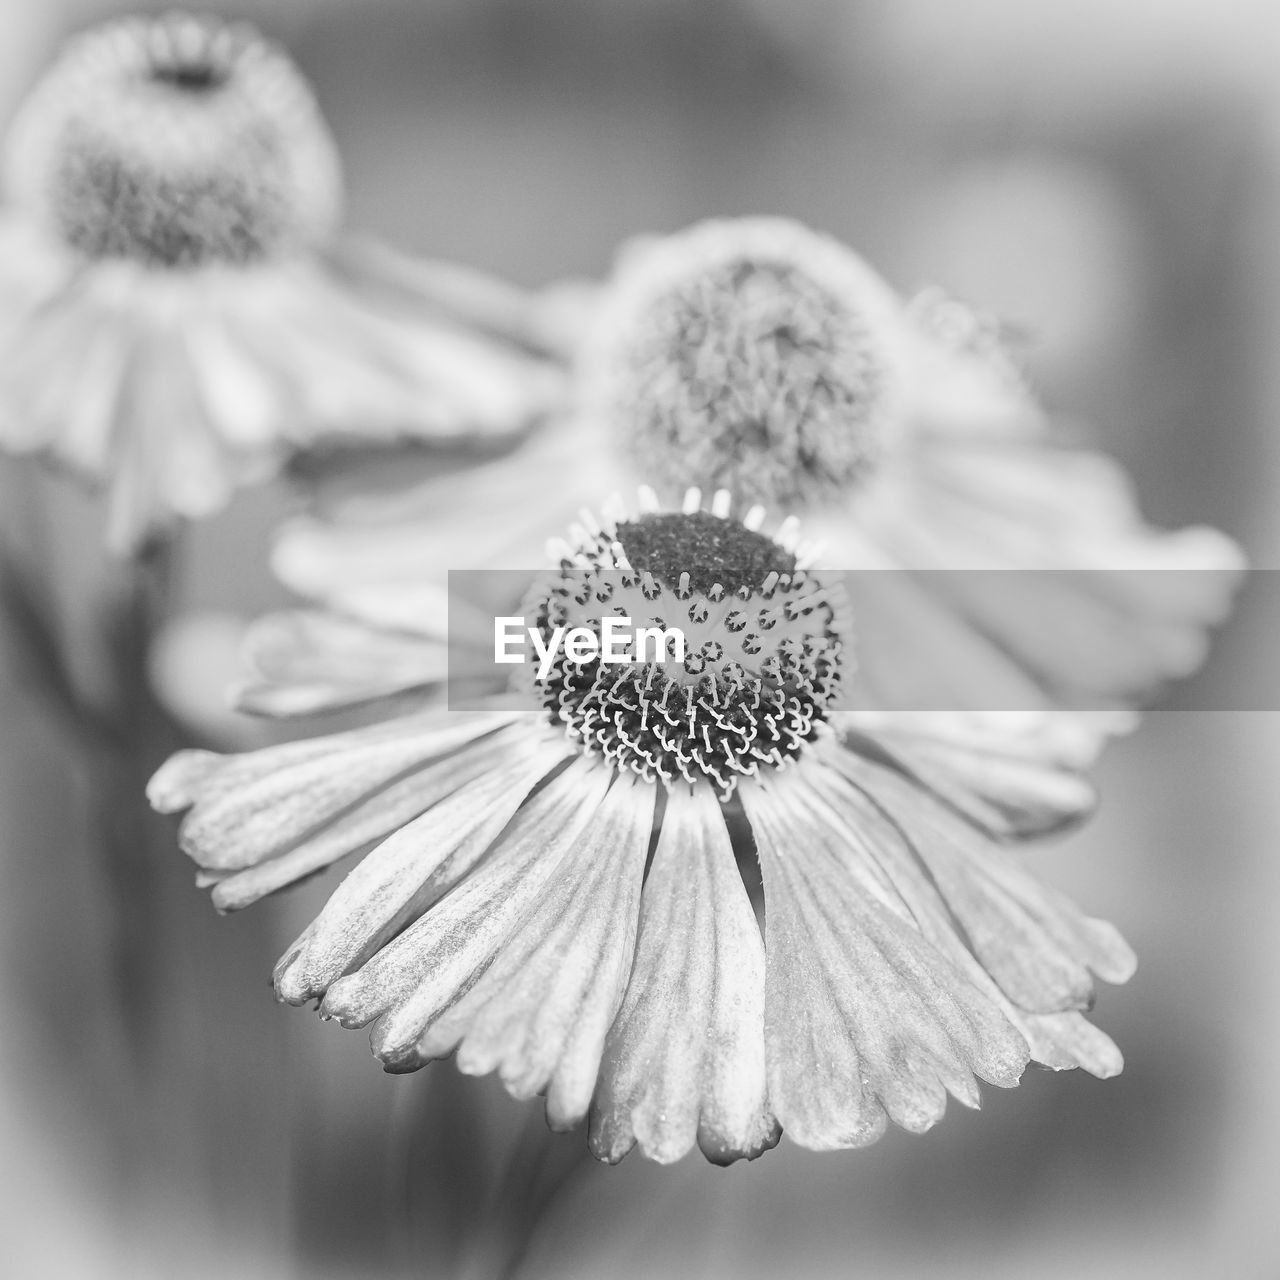 flower, flowering plant, freshness, close-up, plant, fragility, vulnerability, beauty in nature, inflorescence, growth, flower head, petal, no people, focus on foreground, nature, selective focus, pollen, day, outdoors